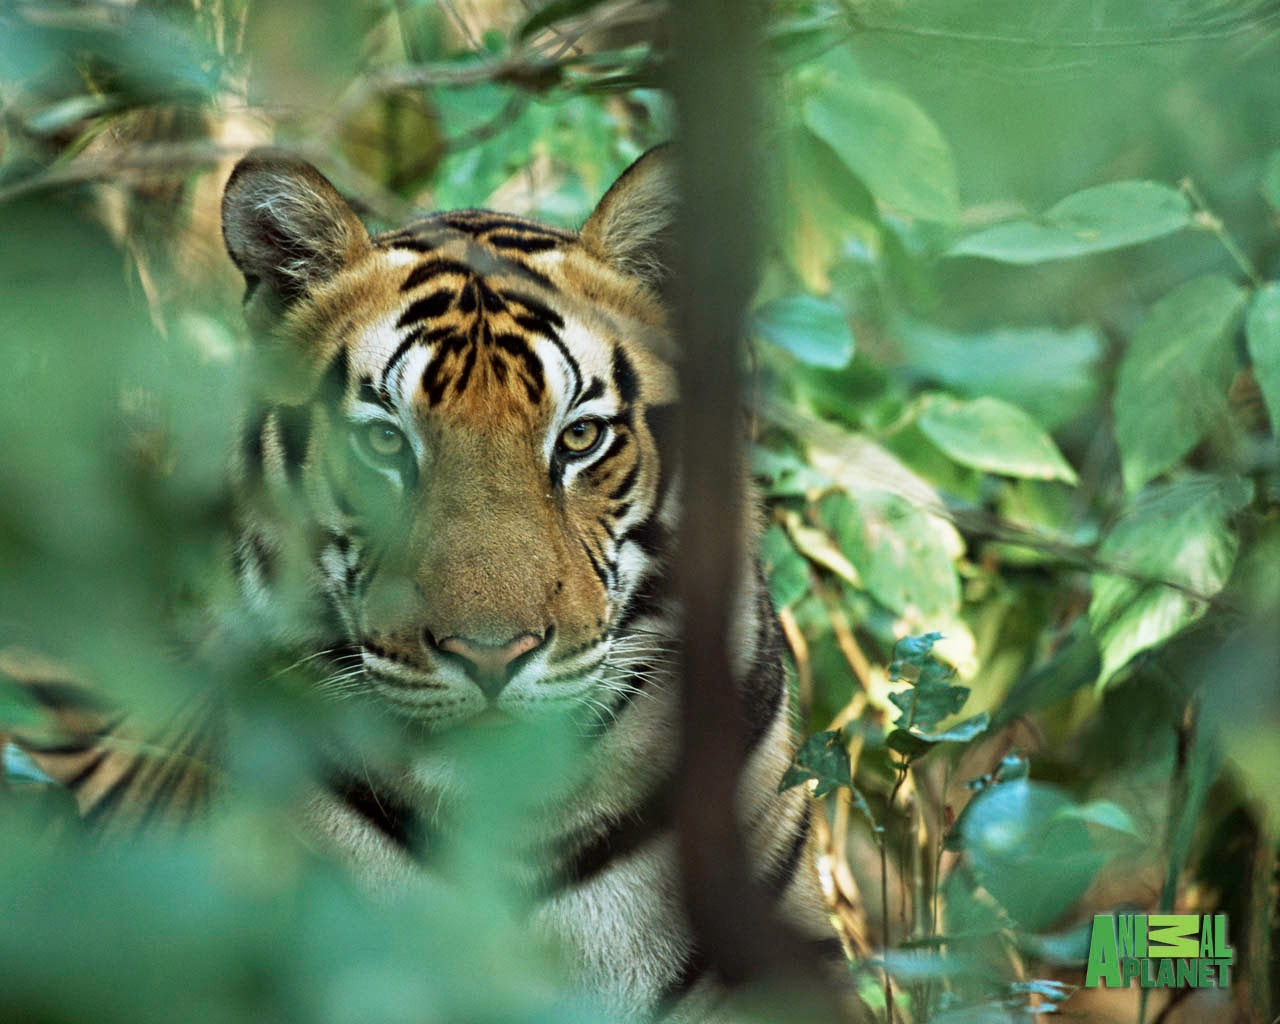 animal planet picture: Animal Planet Wallpaper Download Tiger